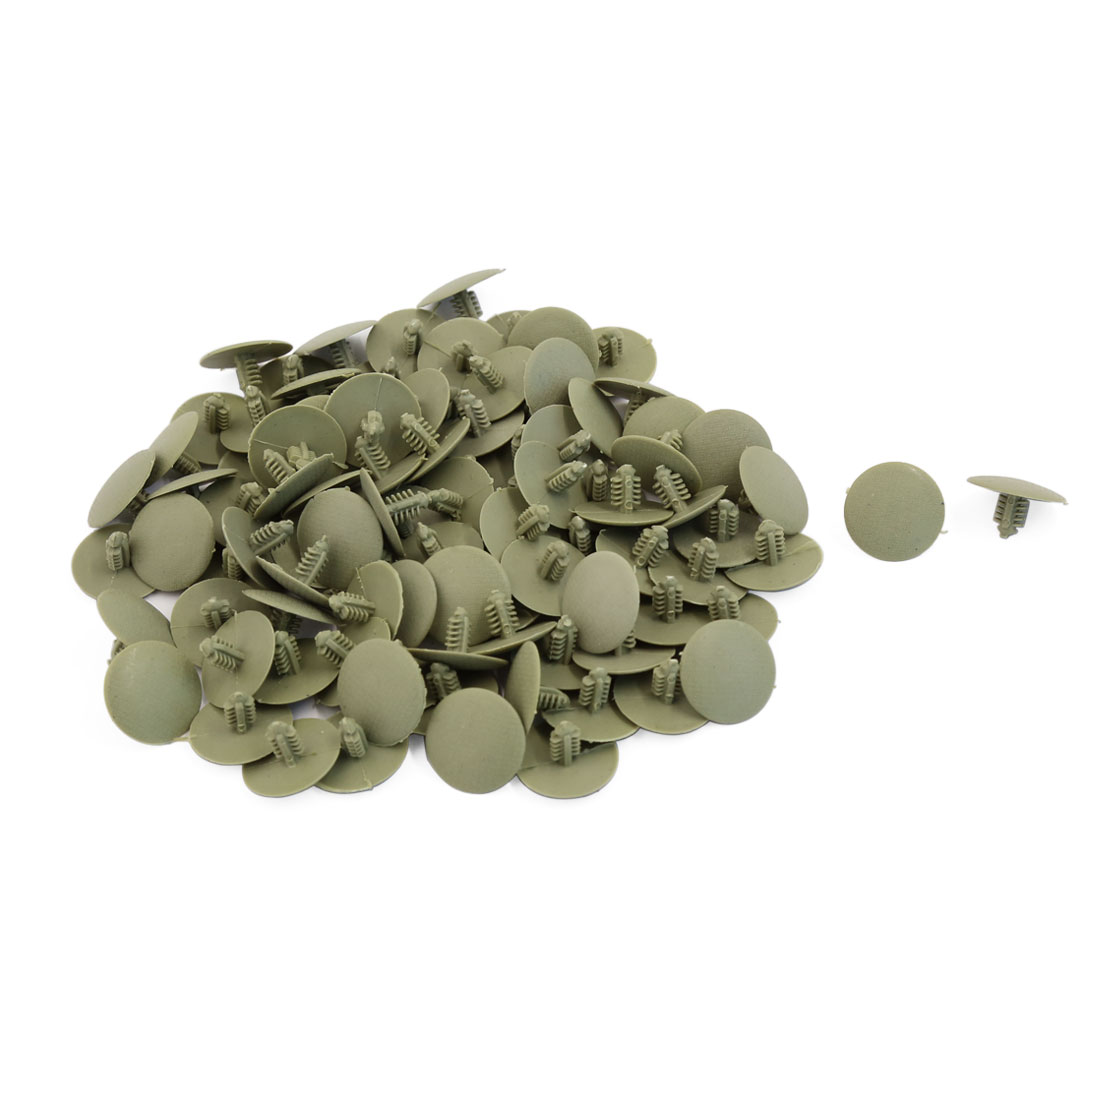 100pcs Beige Plastic Car Door Fender Bumper Push Rivets Fasteners 7mmx10mmx21mm